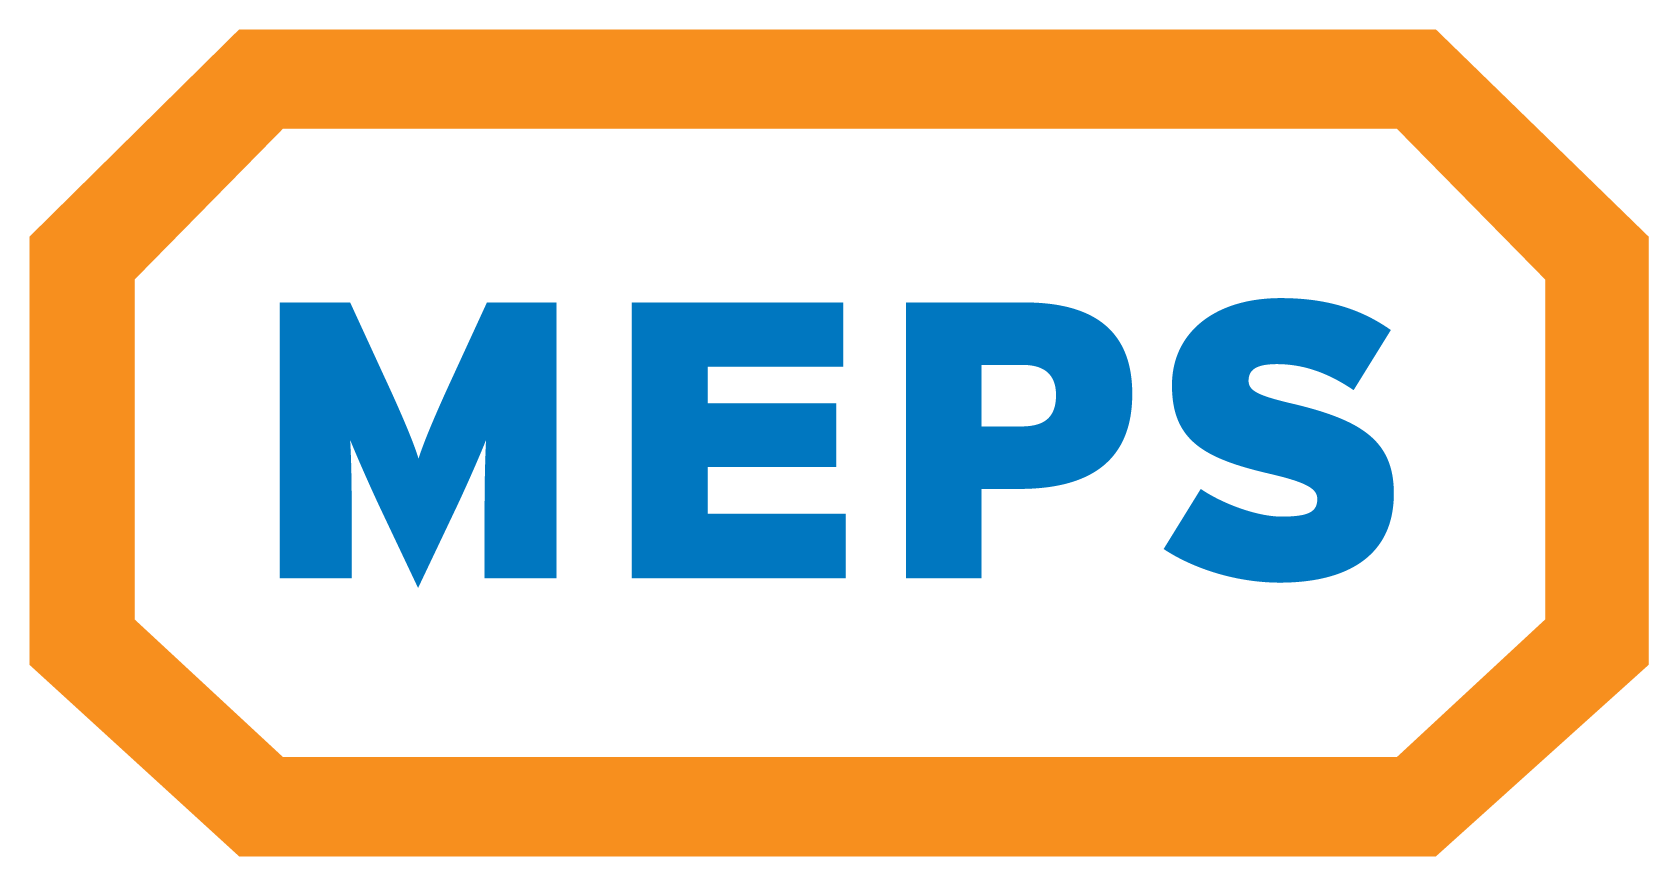 New logo png. File meps wikipedia filemeps